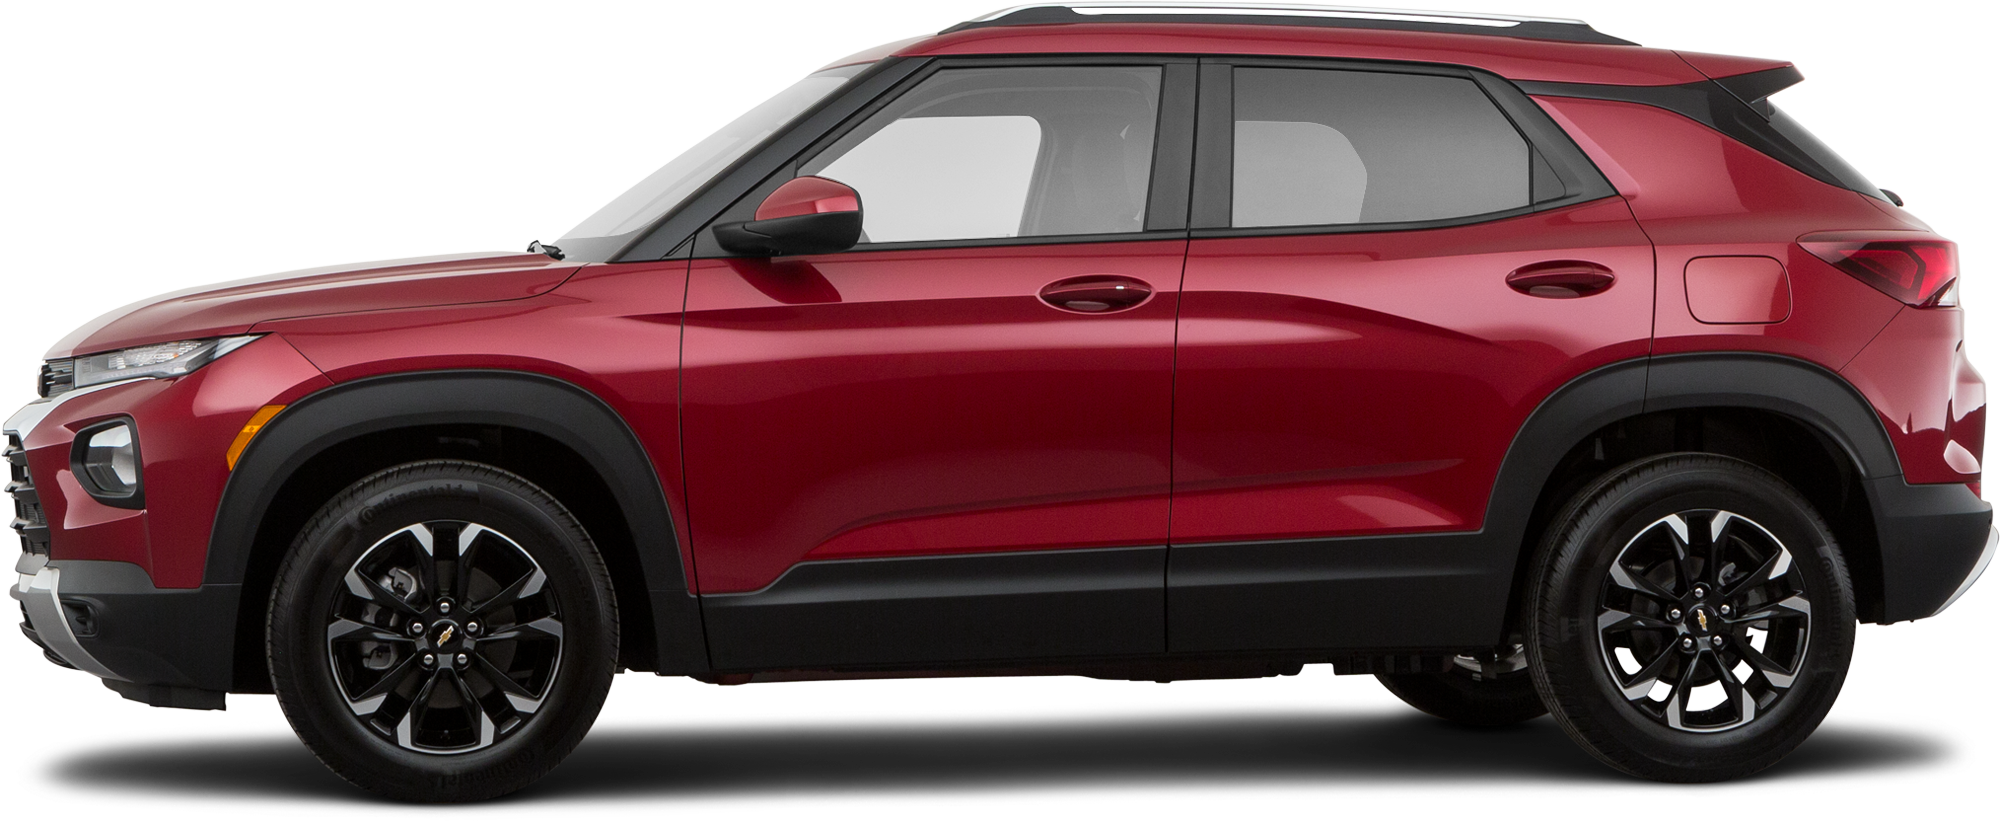 2021 Chevrolet Trailblazer SUV LT